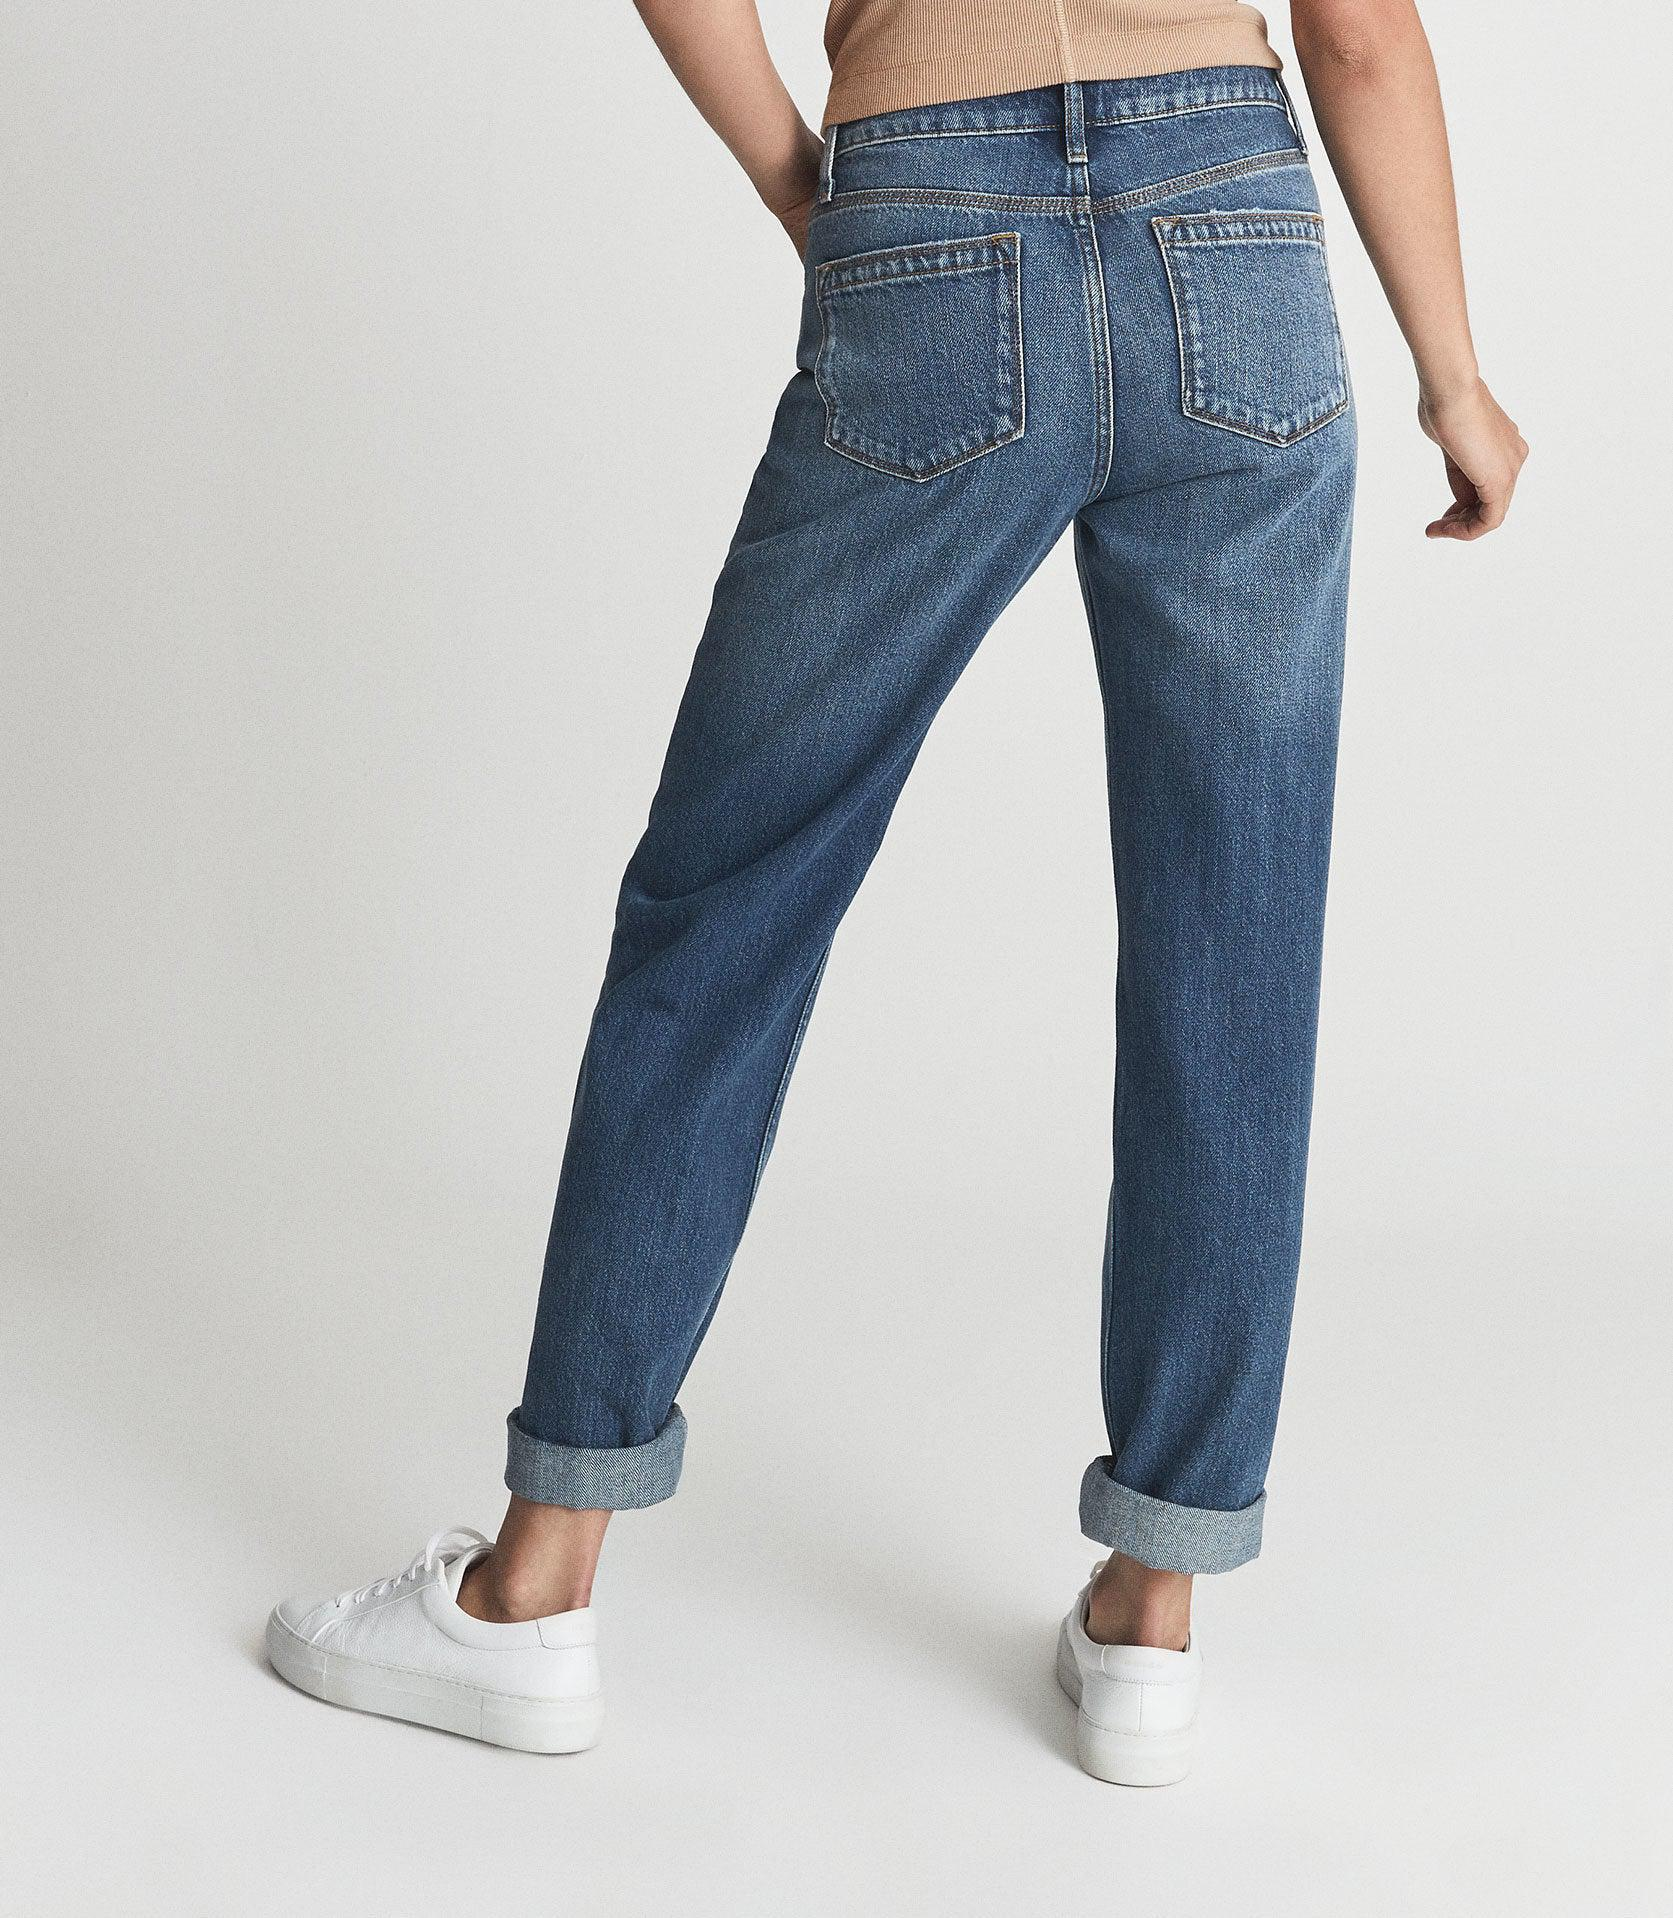 ADELE - MID RISE RELAXED WIDE LEG JEANS 2